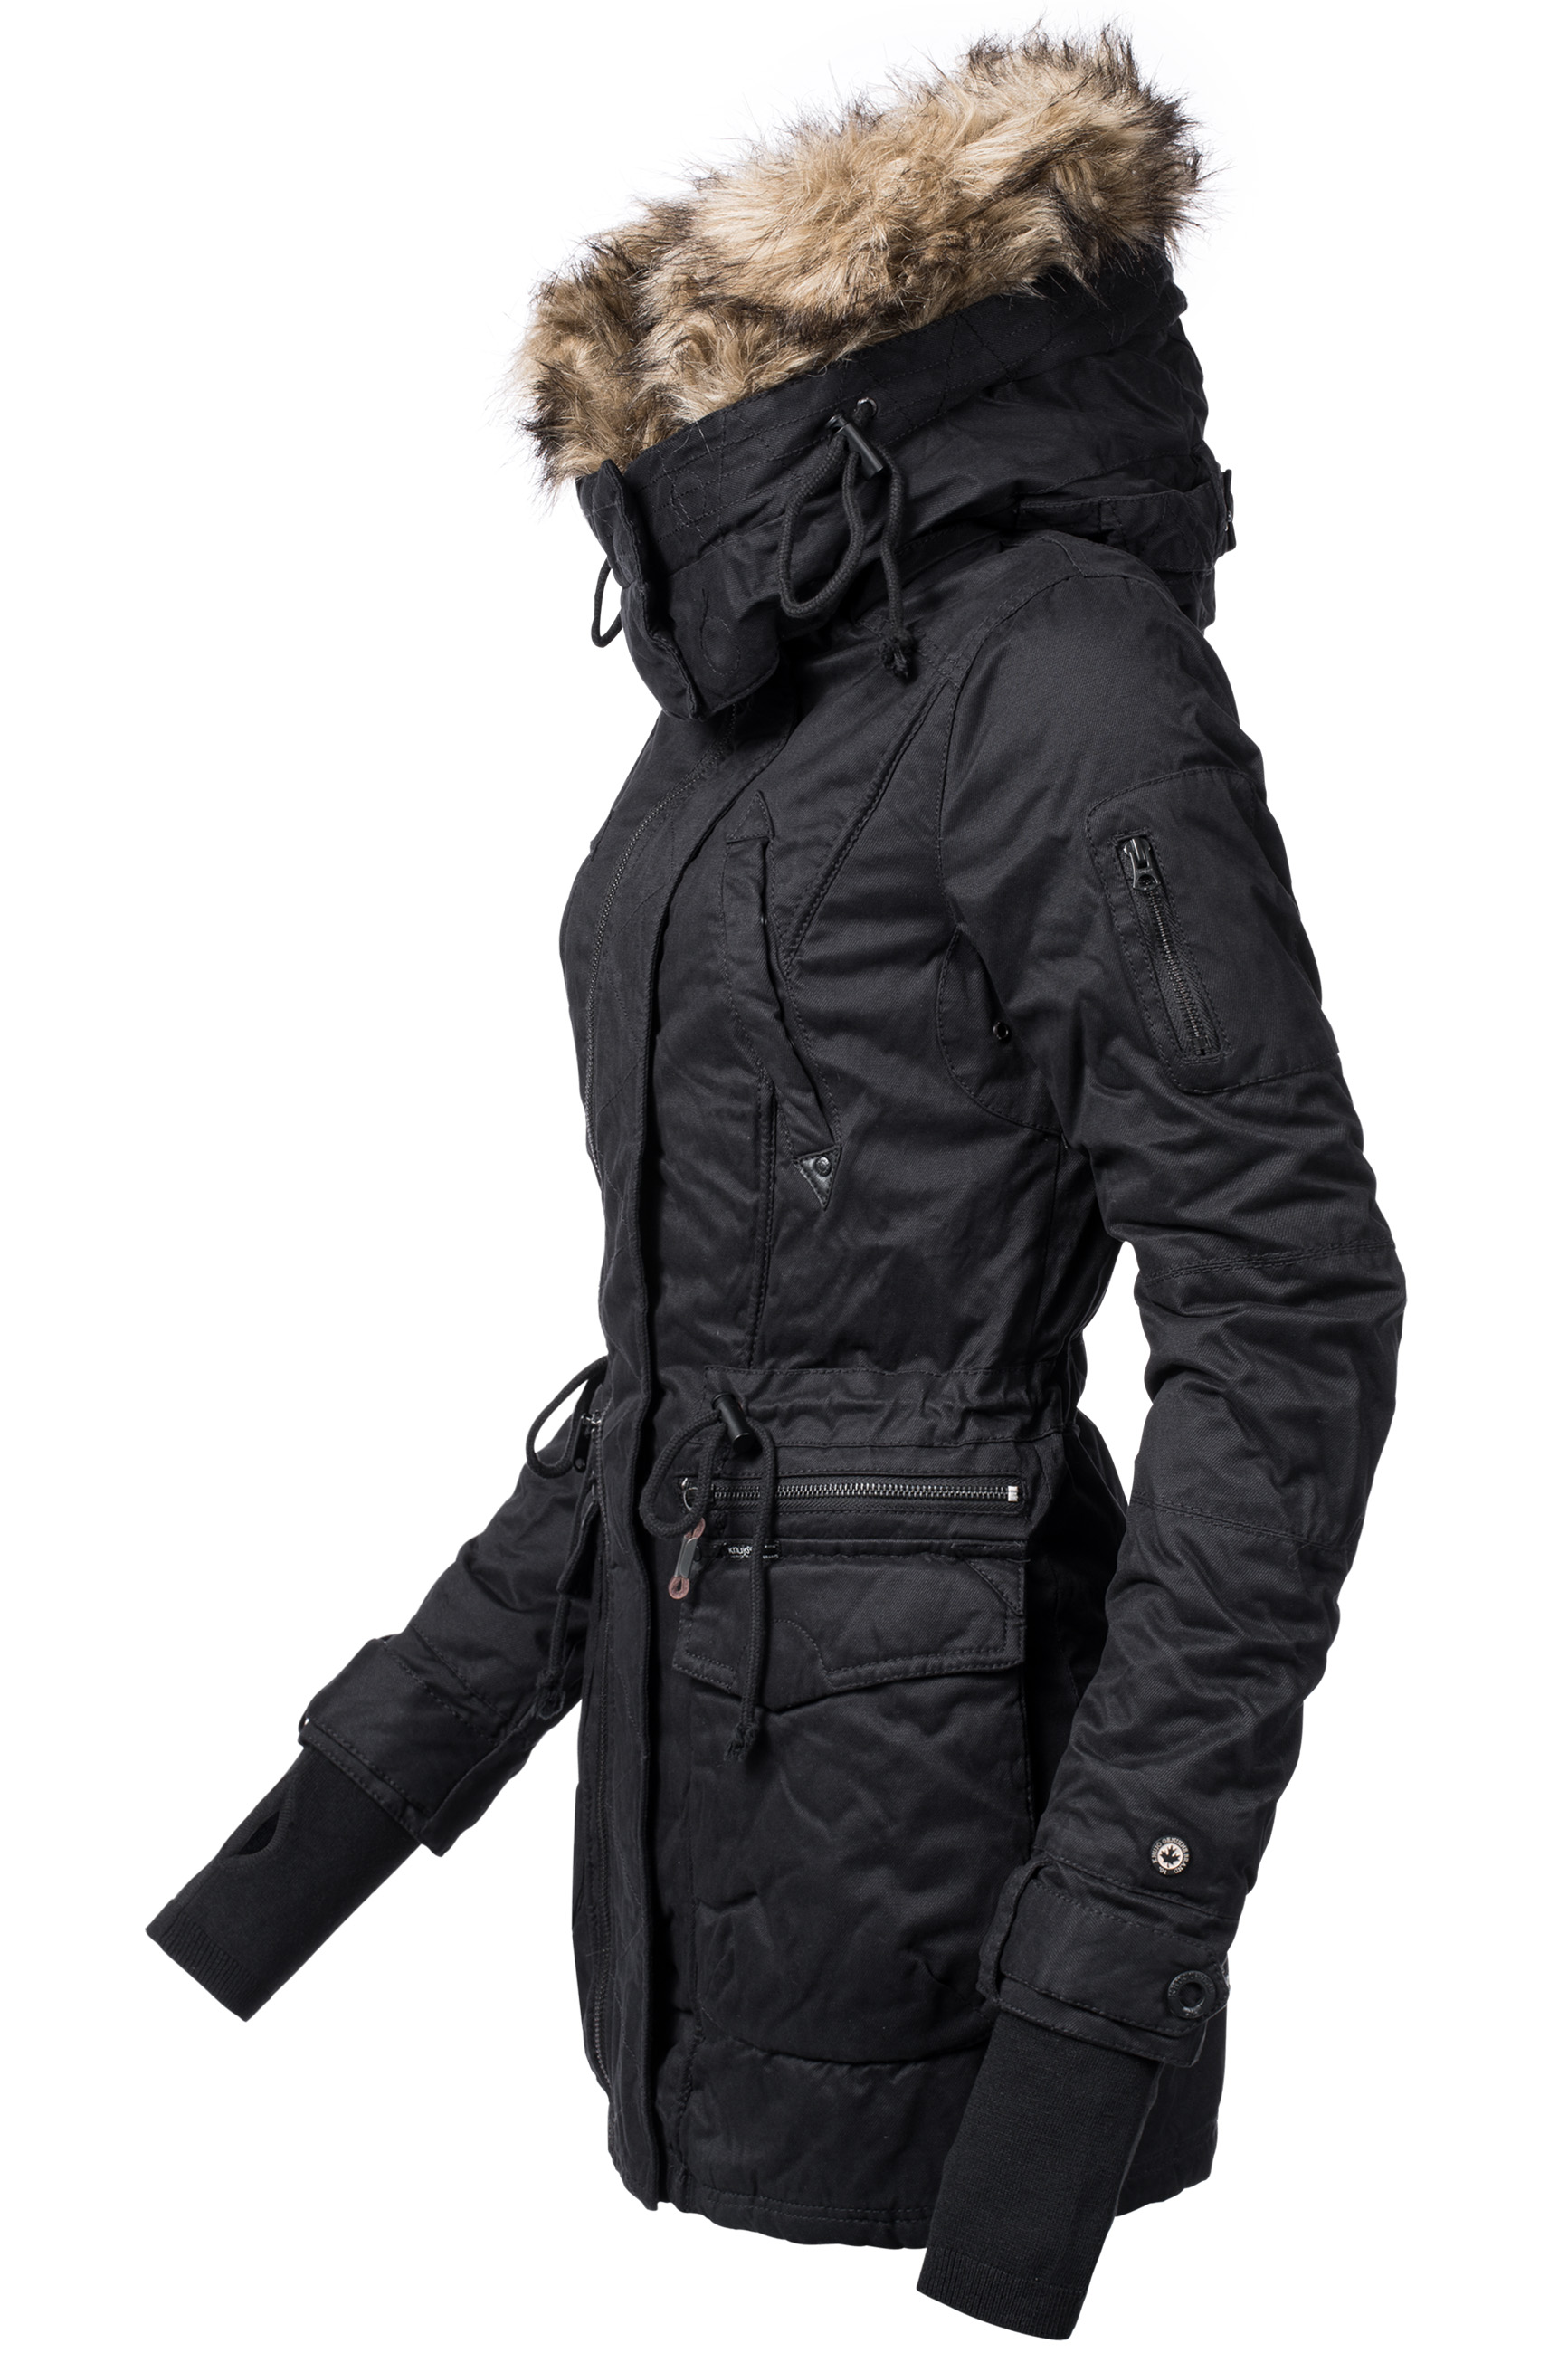 khujo jacken damen winter khujo damen winterparka thyra damenparka winterjacke winter jacke. Black Bedroom Furniture Sets. Home Design Ideas